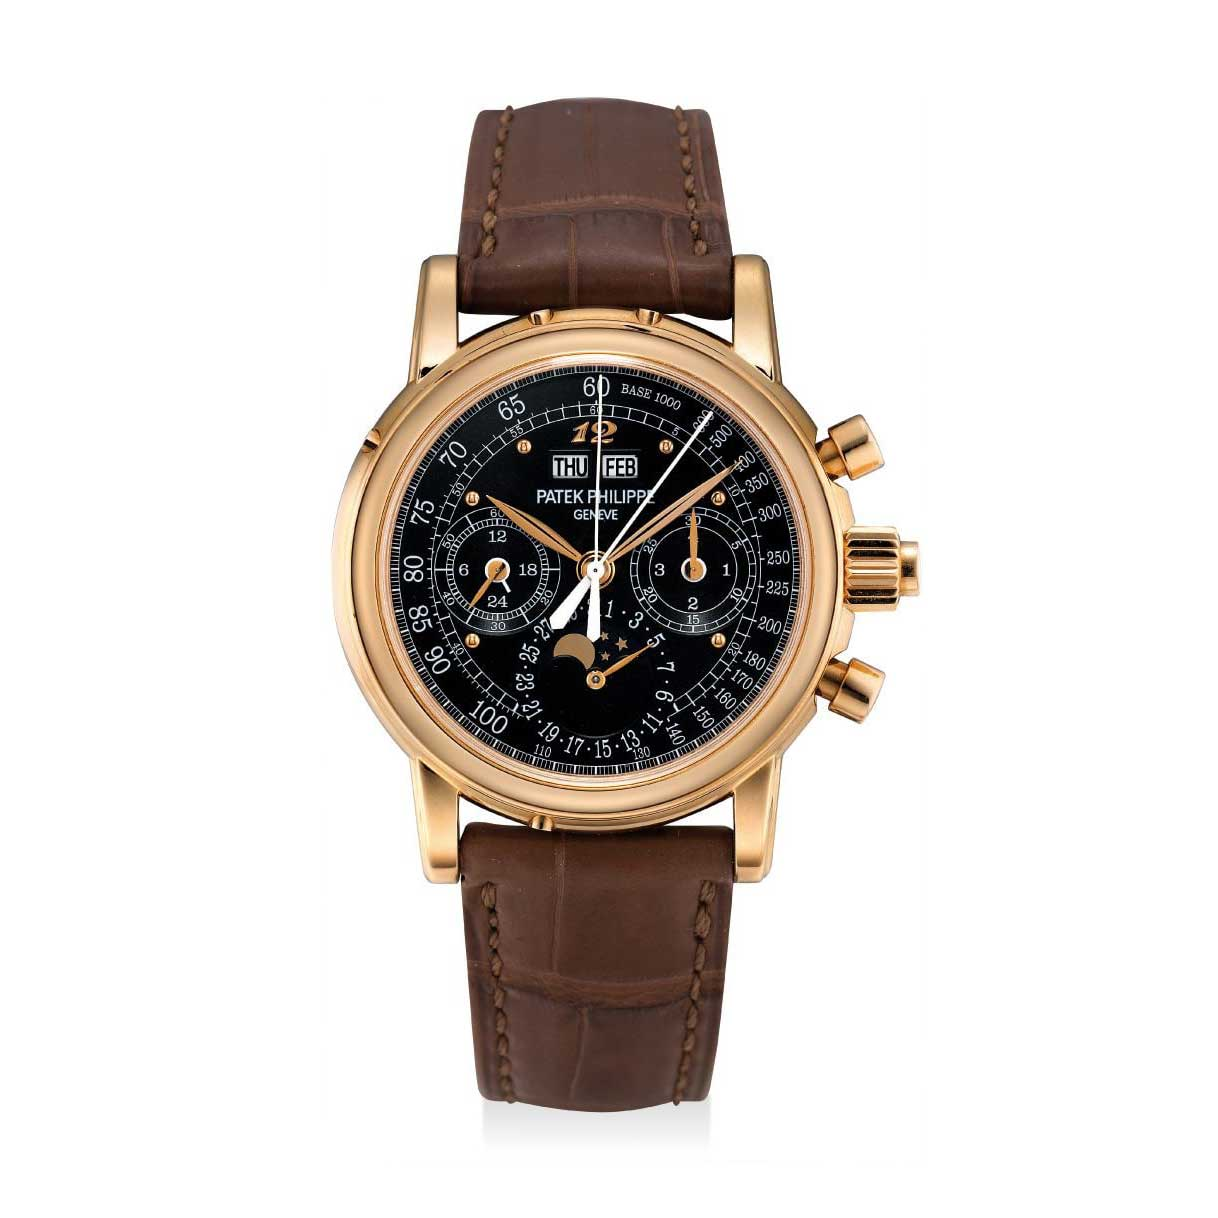 Formerly in the collection of Eric Clapton, CBE, a pink gold Patek Philippe ref. 5004 perpetual calendar split seconds chronograph wristwatch with a special black tachymetre dial and applied Breguet numeral at 12 o'clock; the watch is presently the property The Hour Glass permanent collection (Image: phillips.com)